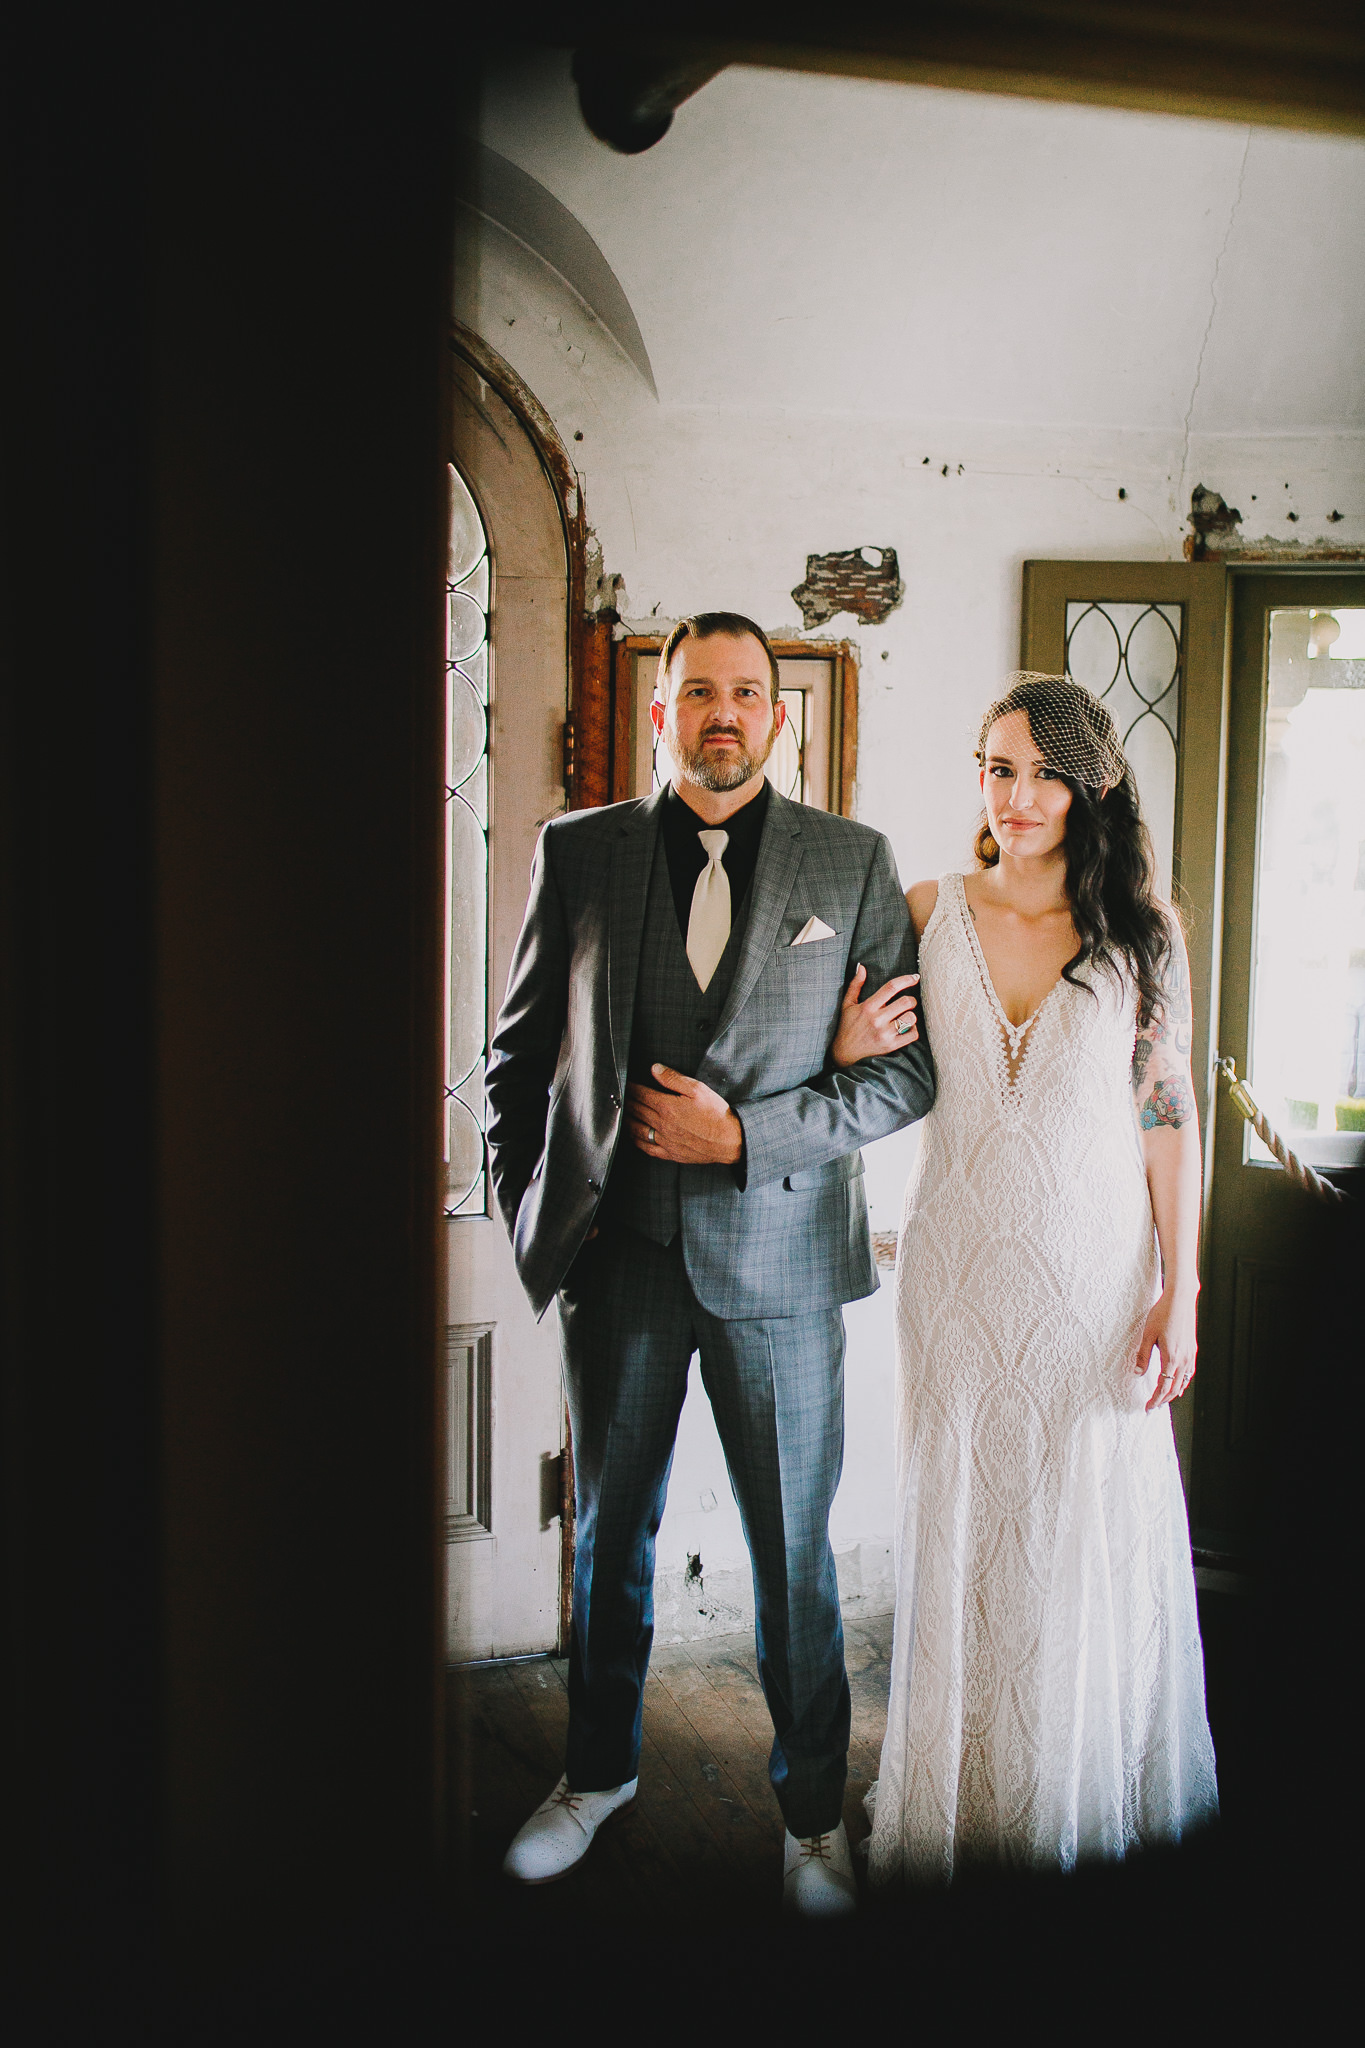 Archer Inspired Photography Sara and Aaron Winchester Mystery House NorCal San Jose California Wedding Photographer-357.jpg